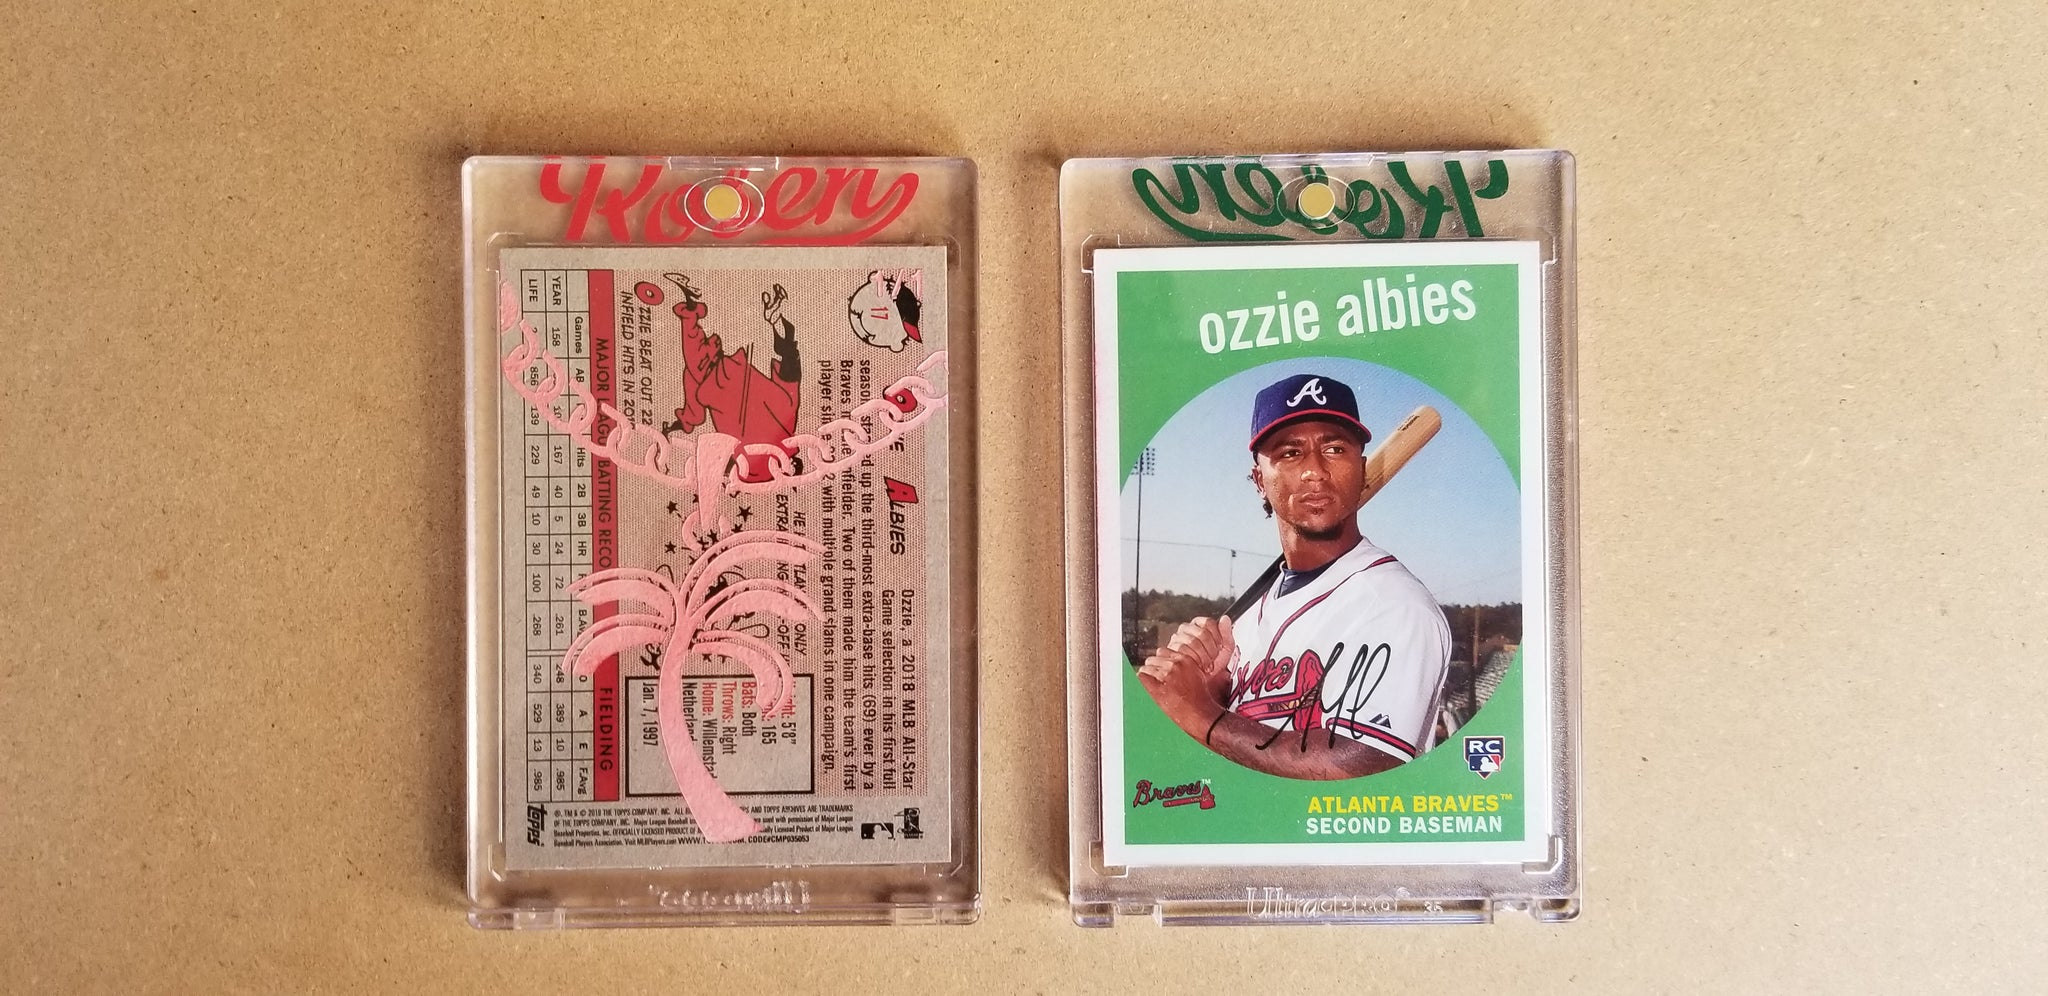 Baseball card art by Matthew Lee Rosen (aka Matthew Rosen) - Ozzie Albies Gold Chain